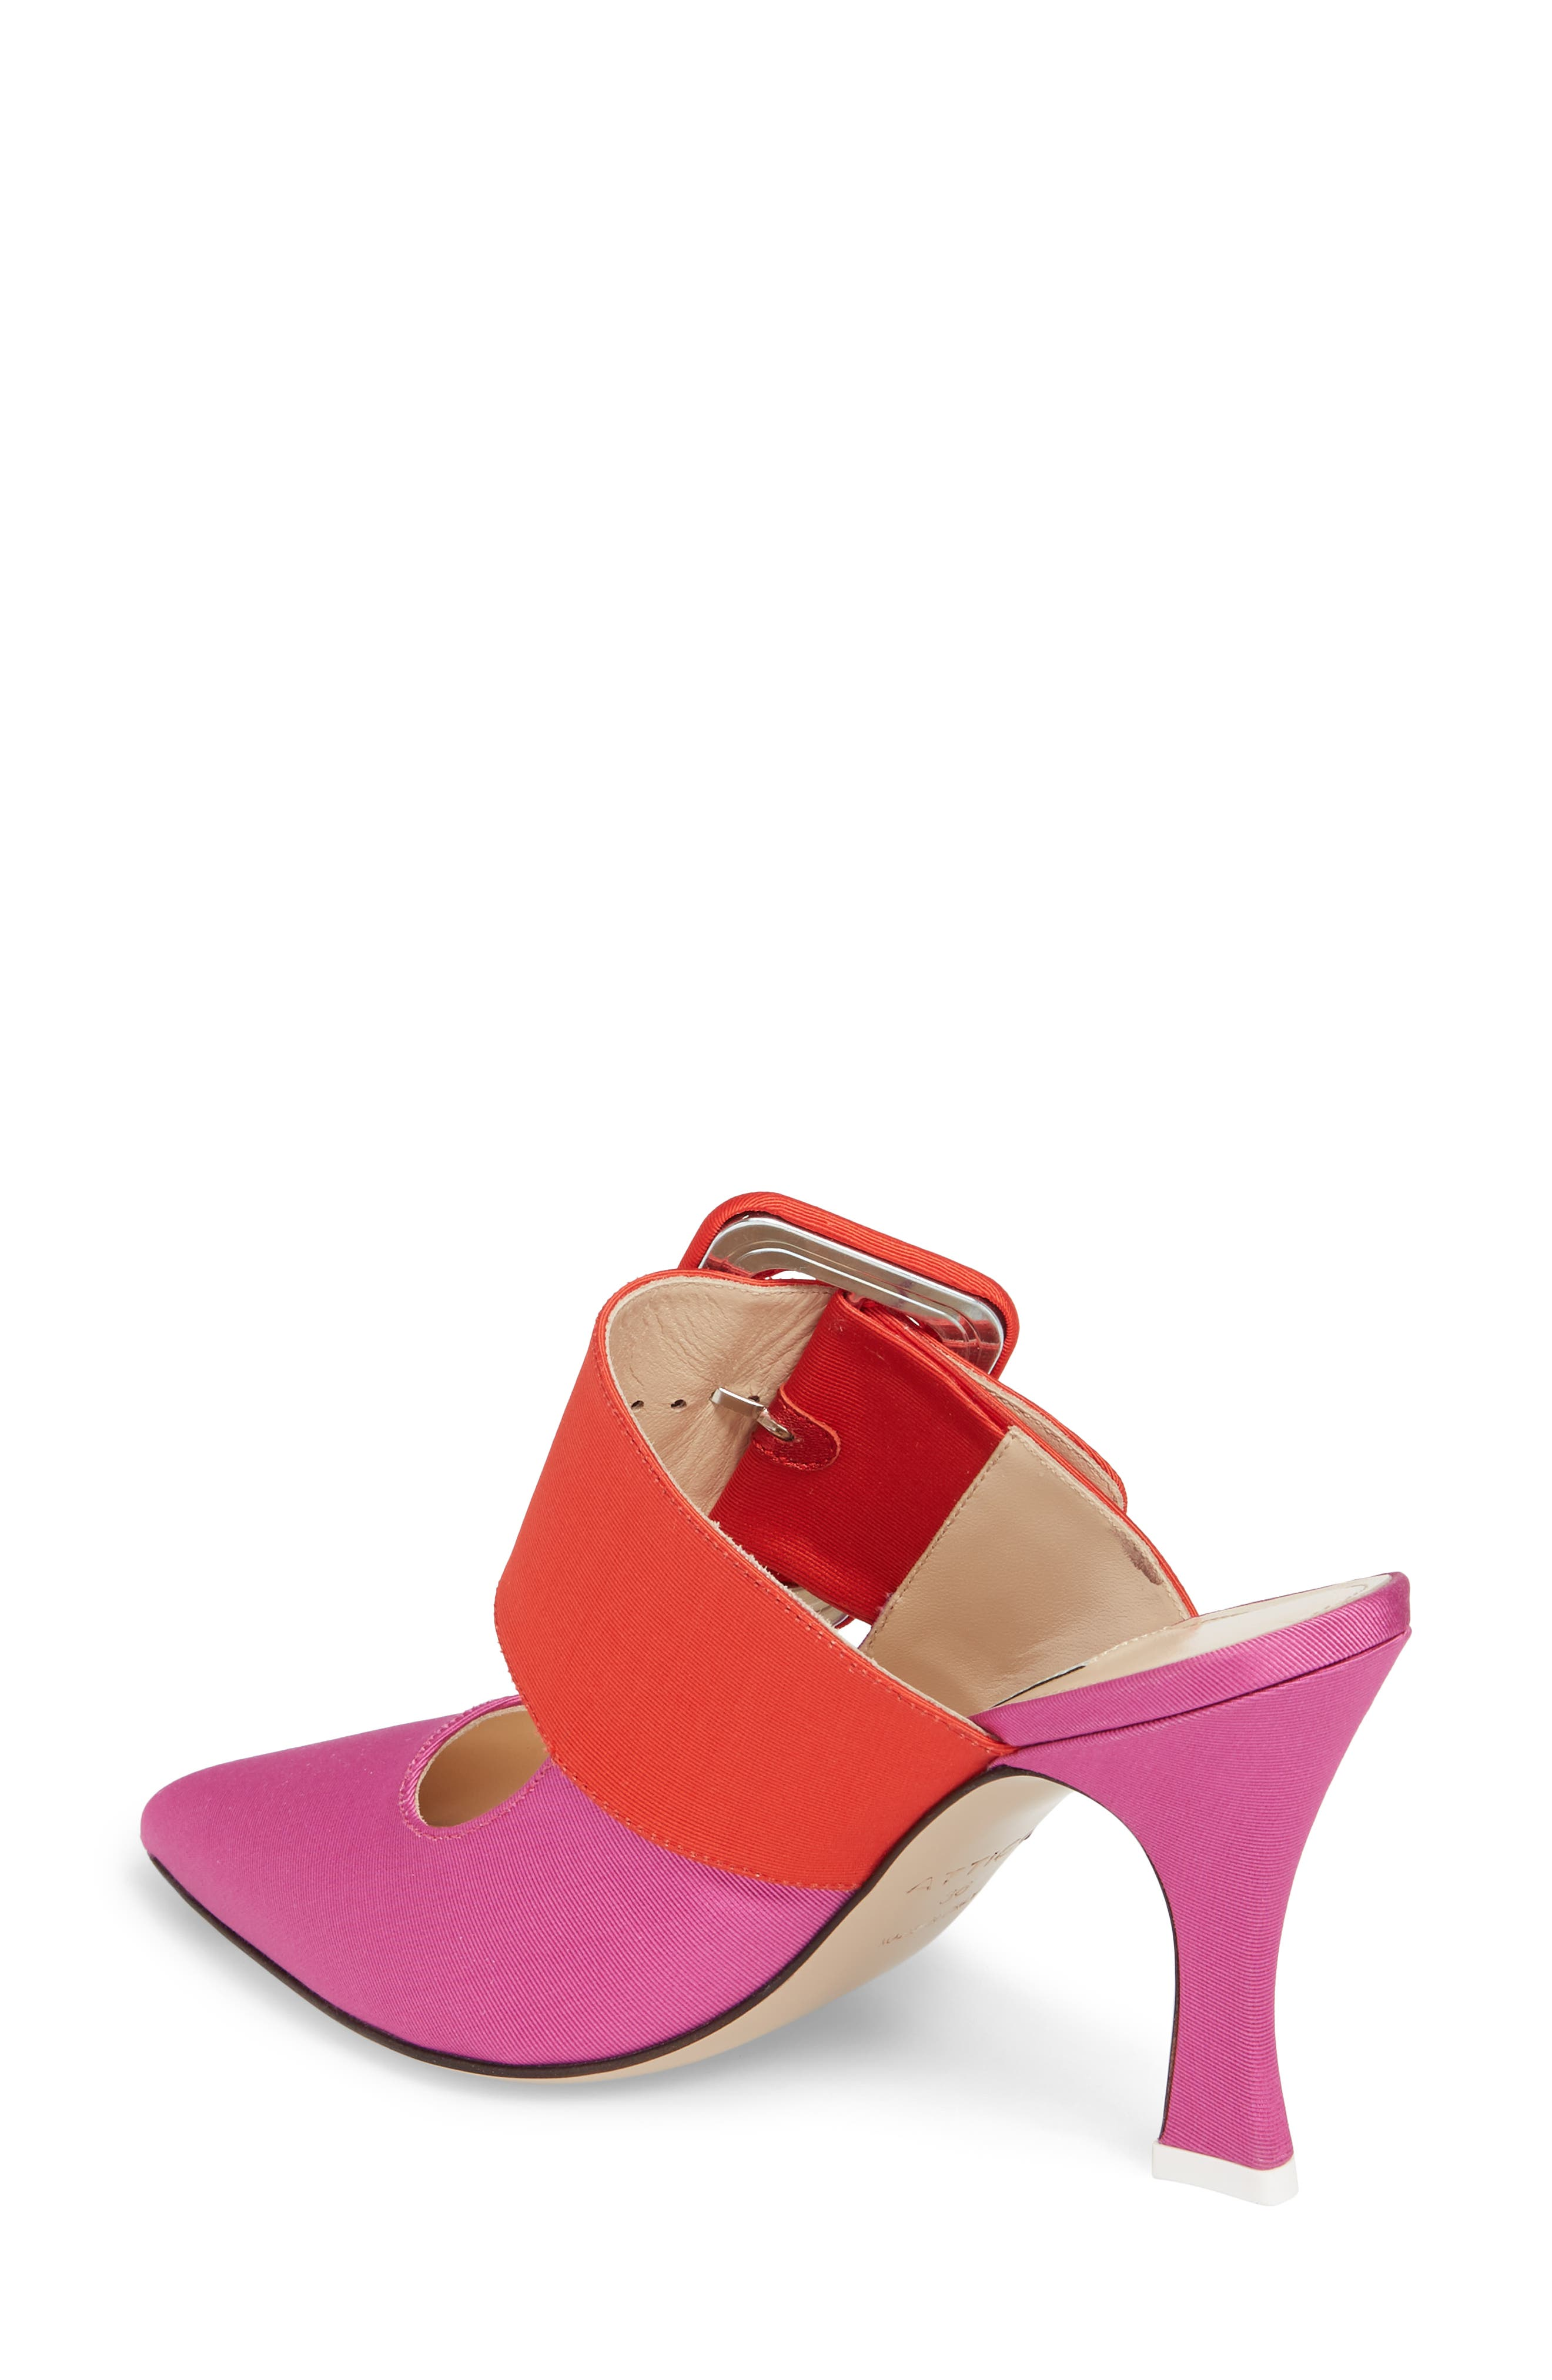 Chloé Buckle Mule,                             Alternate thumbnail 2, color,                             Pink/ Red